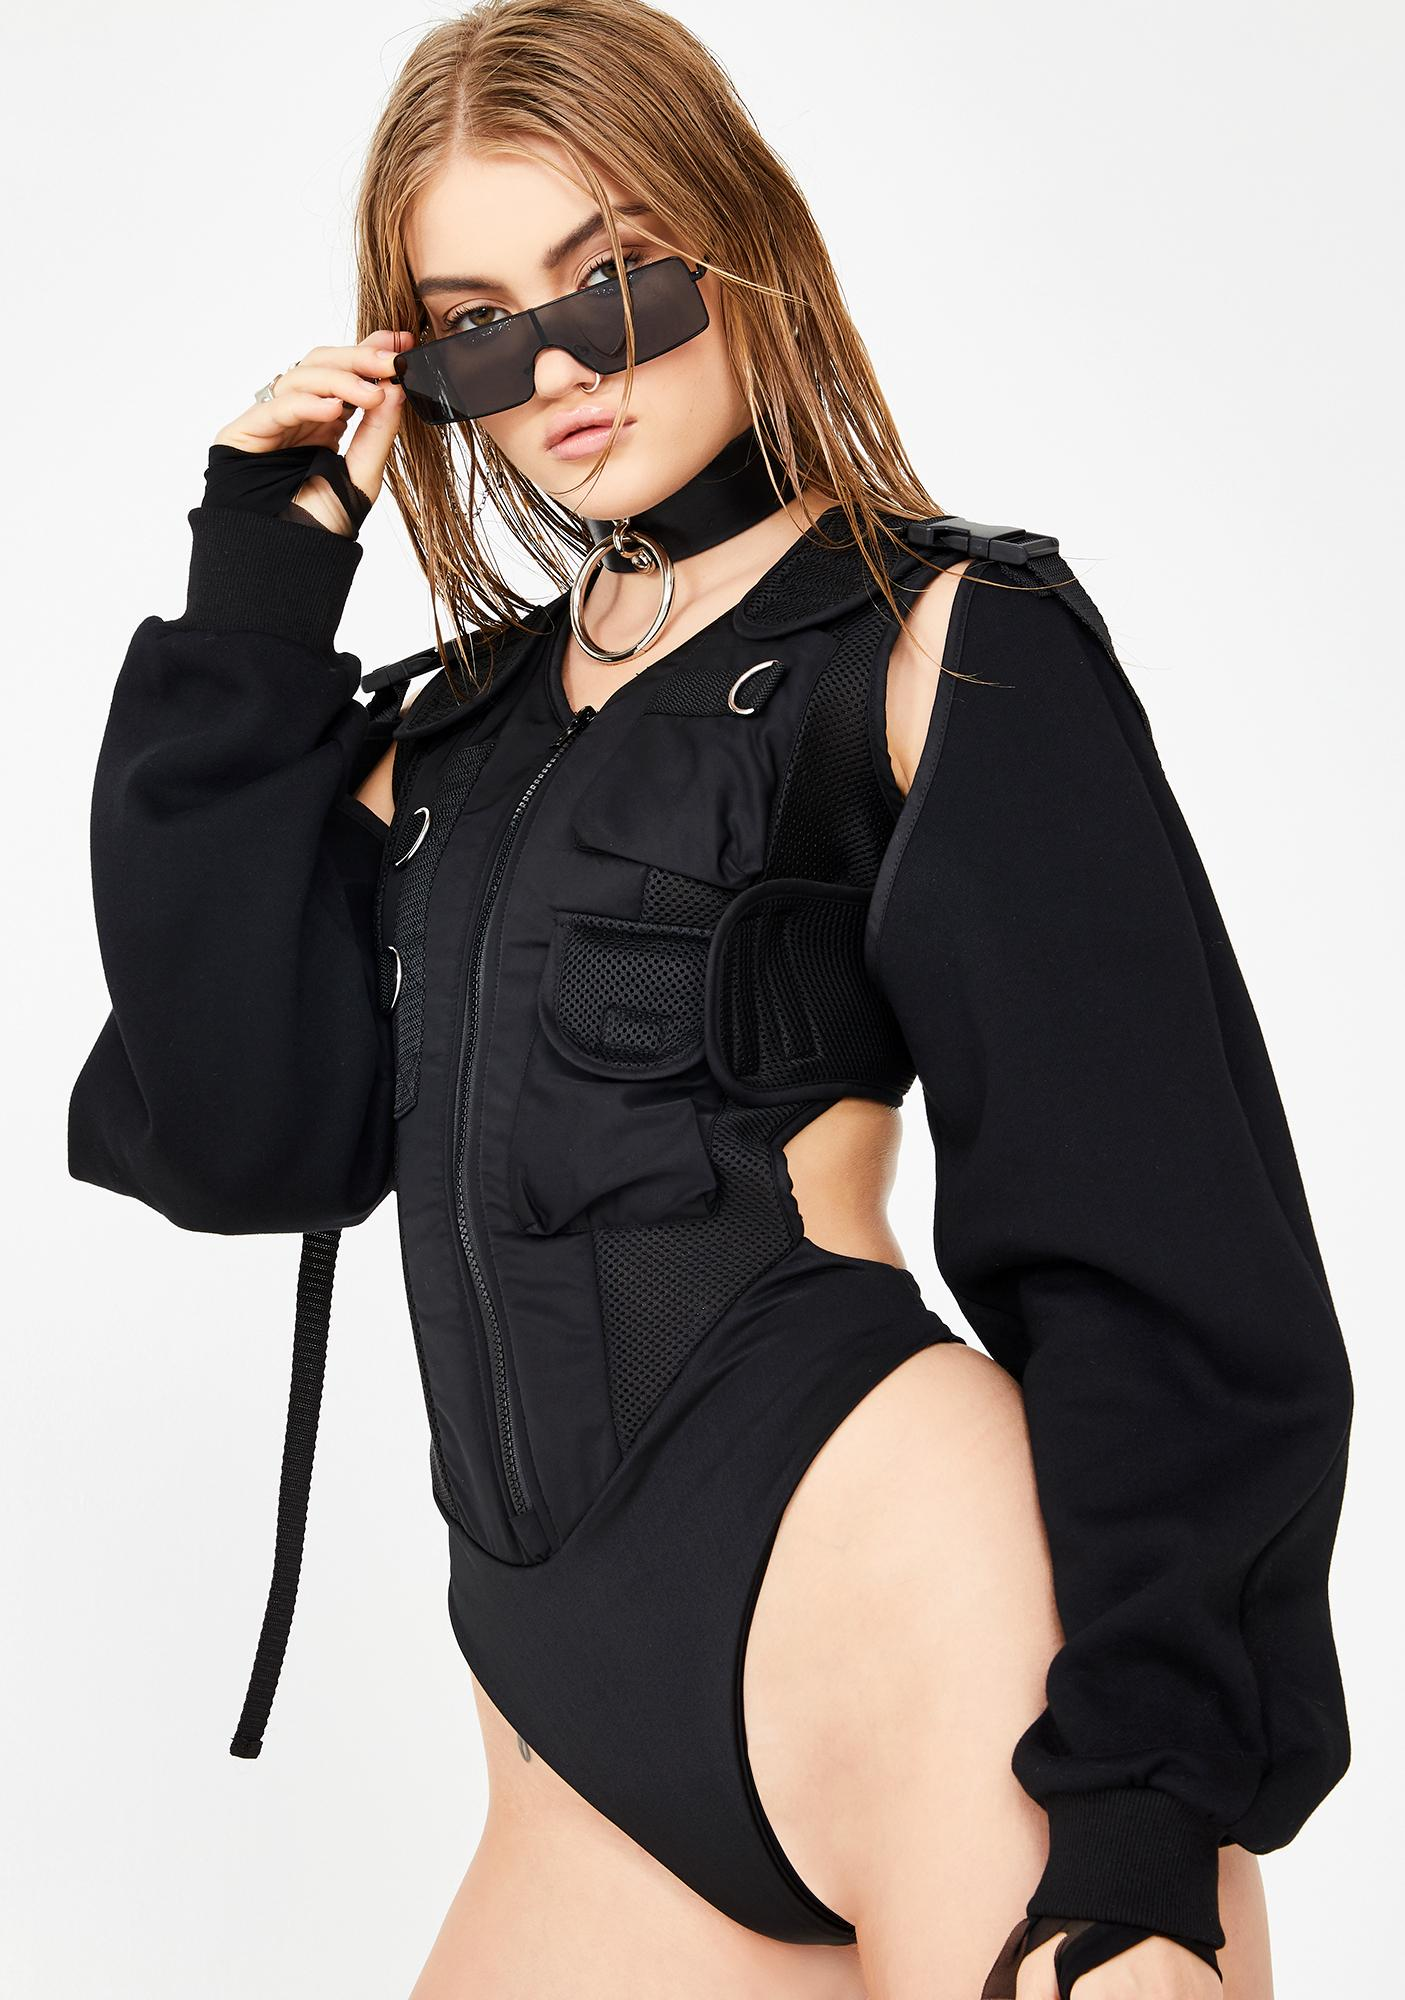 Namilia Tactical Bodysuit With Detachable Sleeves